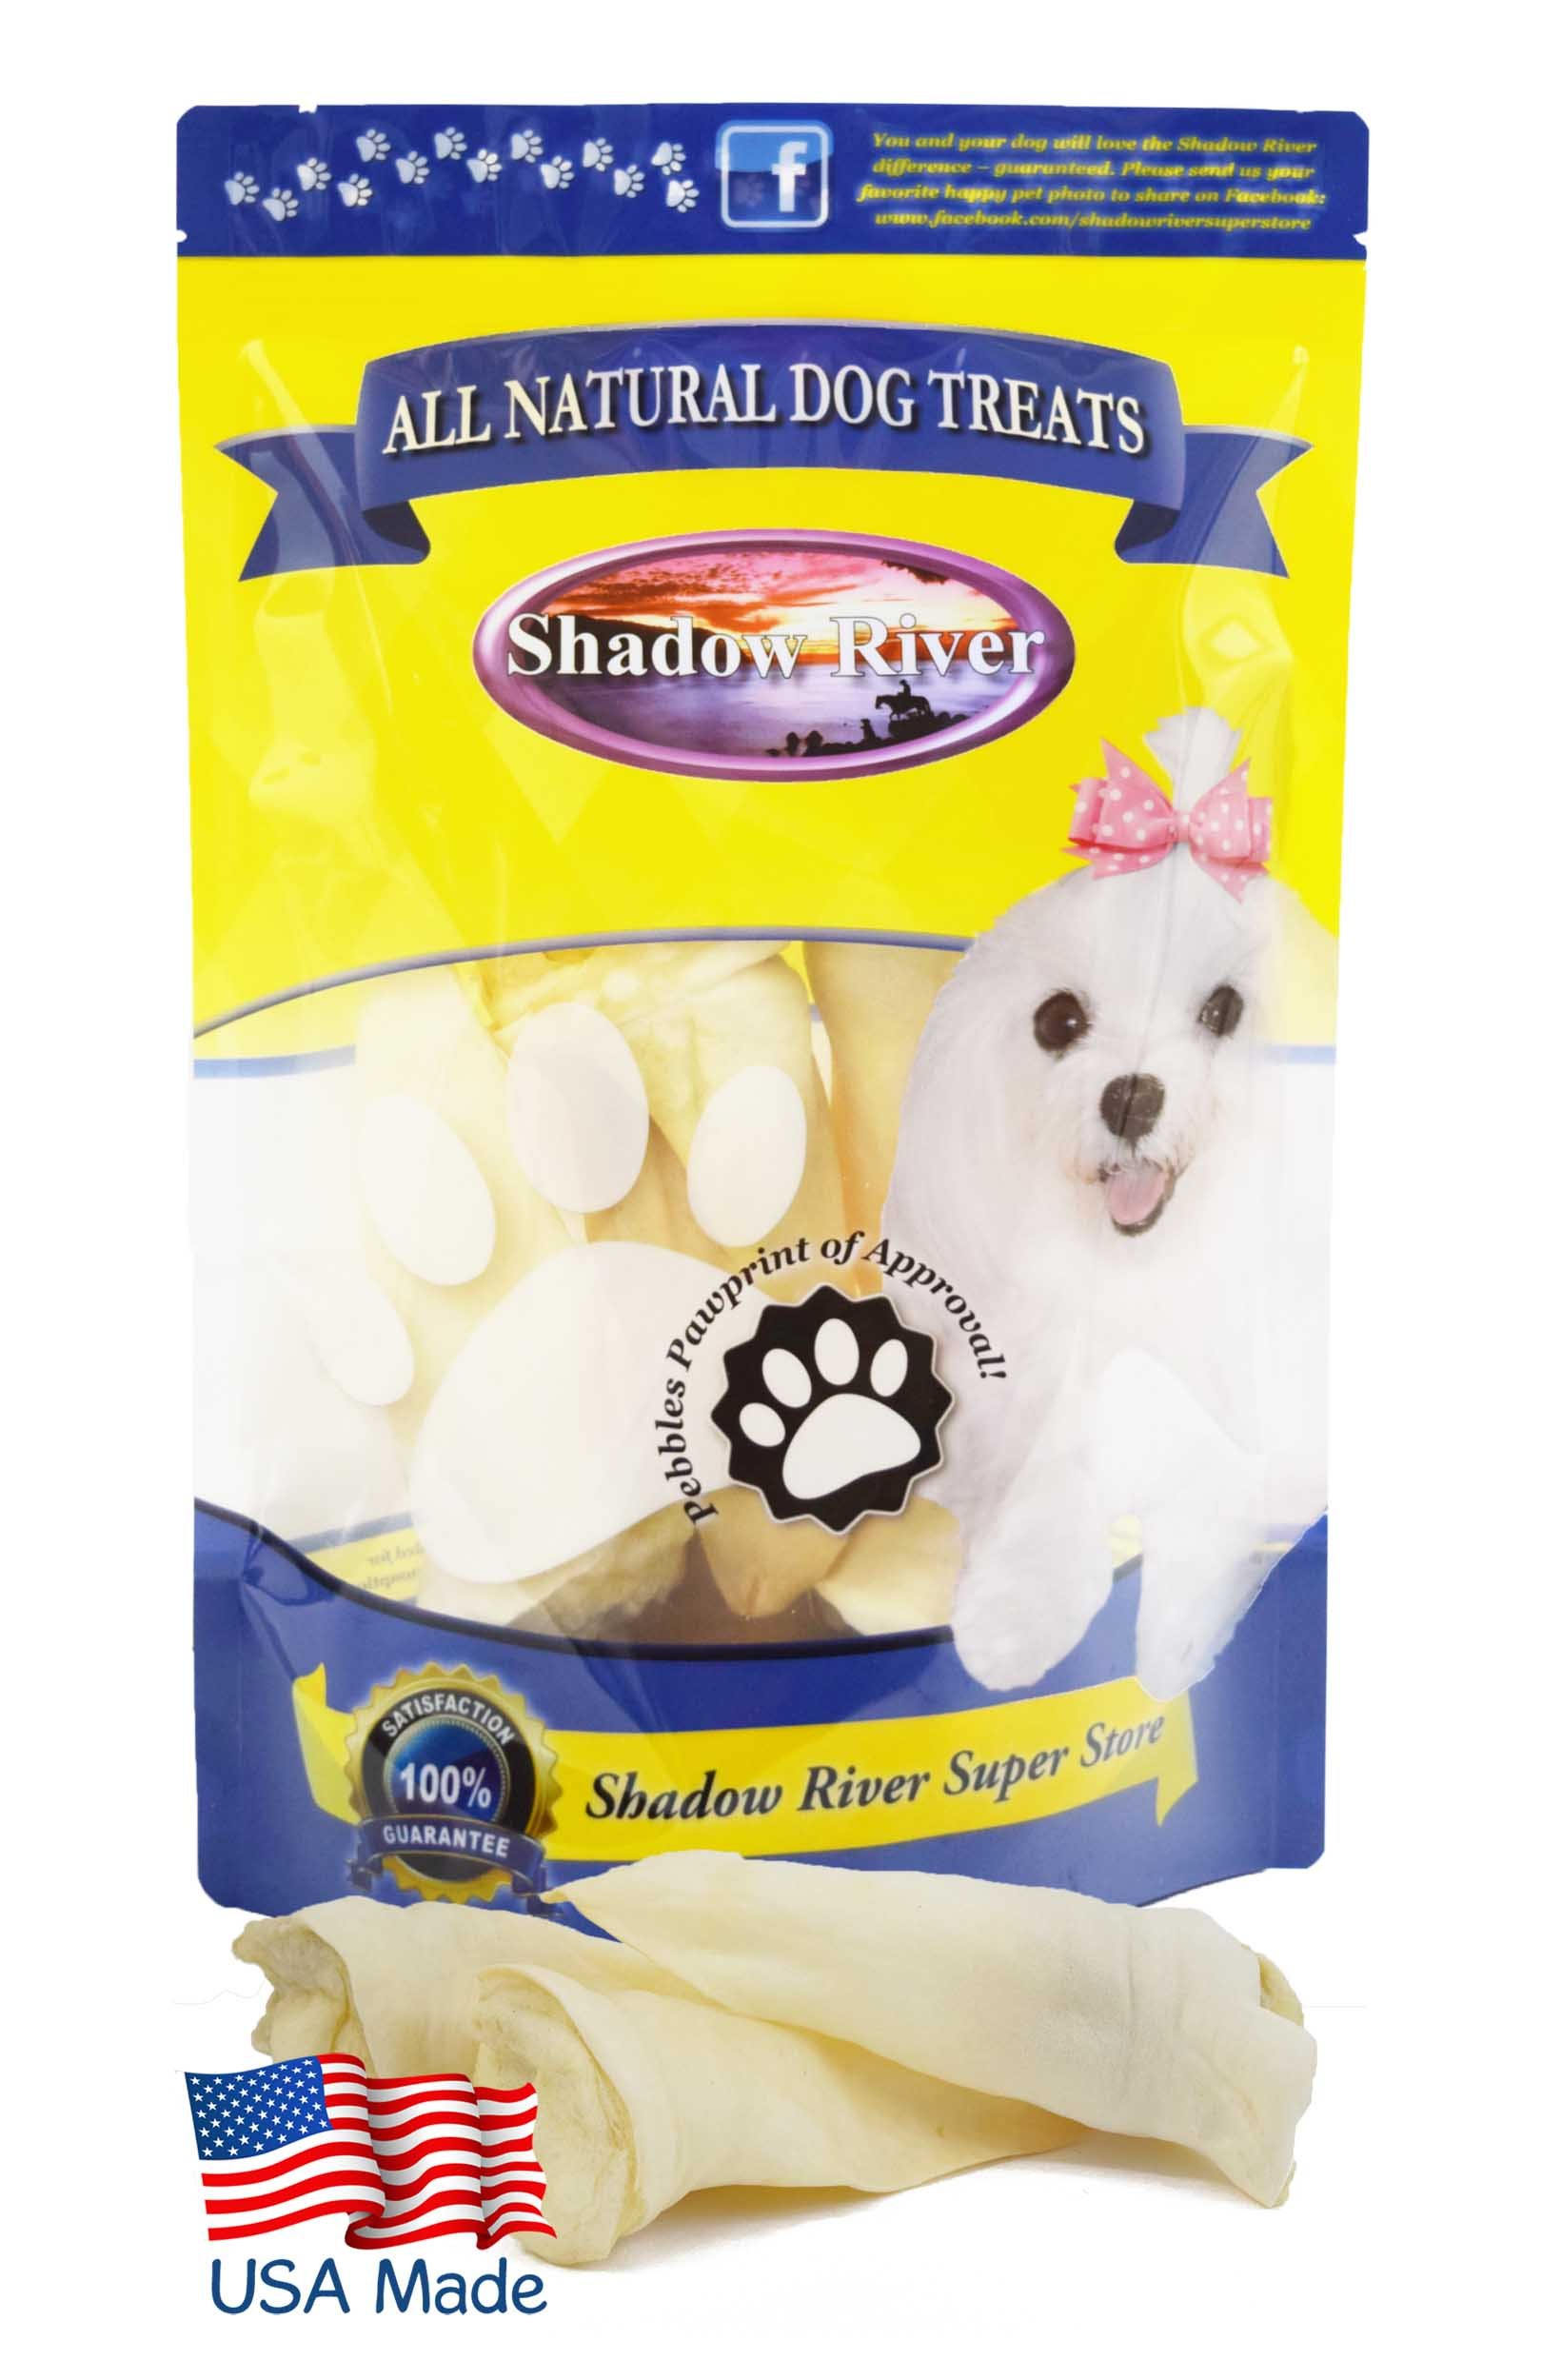 Shadow River Lamb Ear Chews for Dogs - Premium All Natural Treats - 25 Pack Regular Full Size Ears